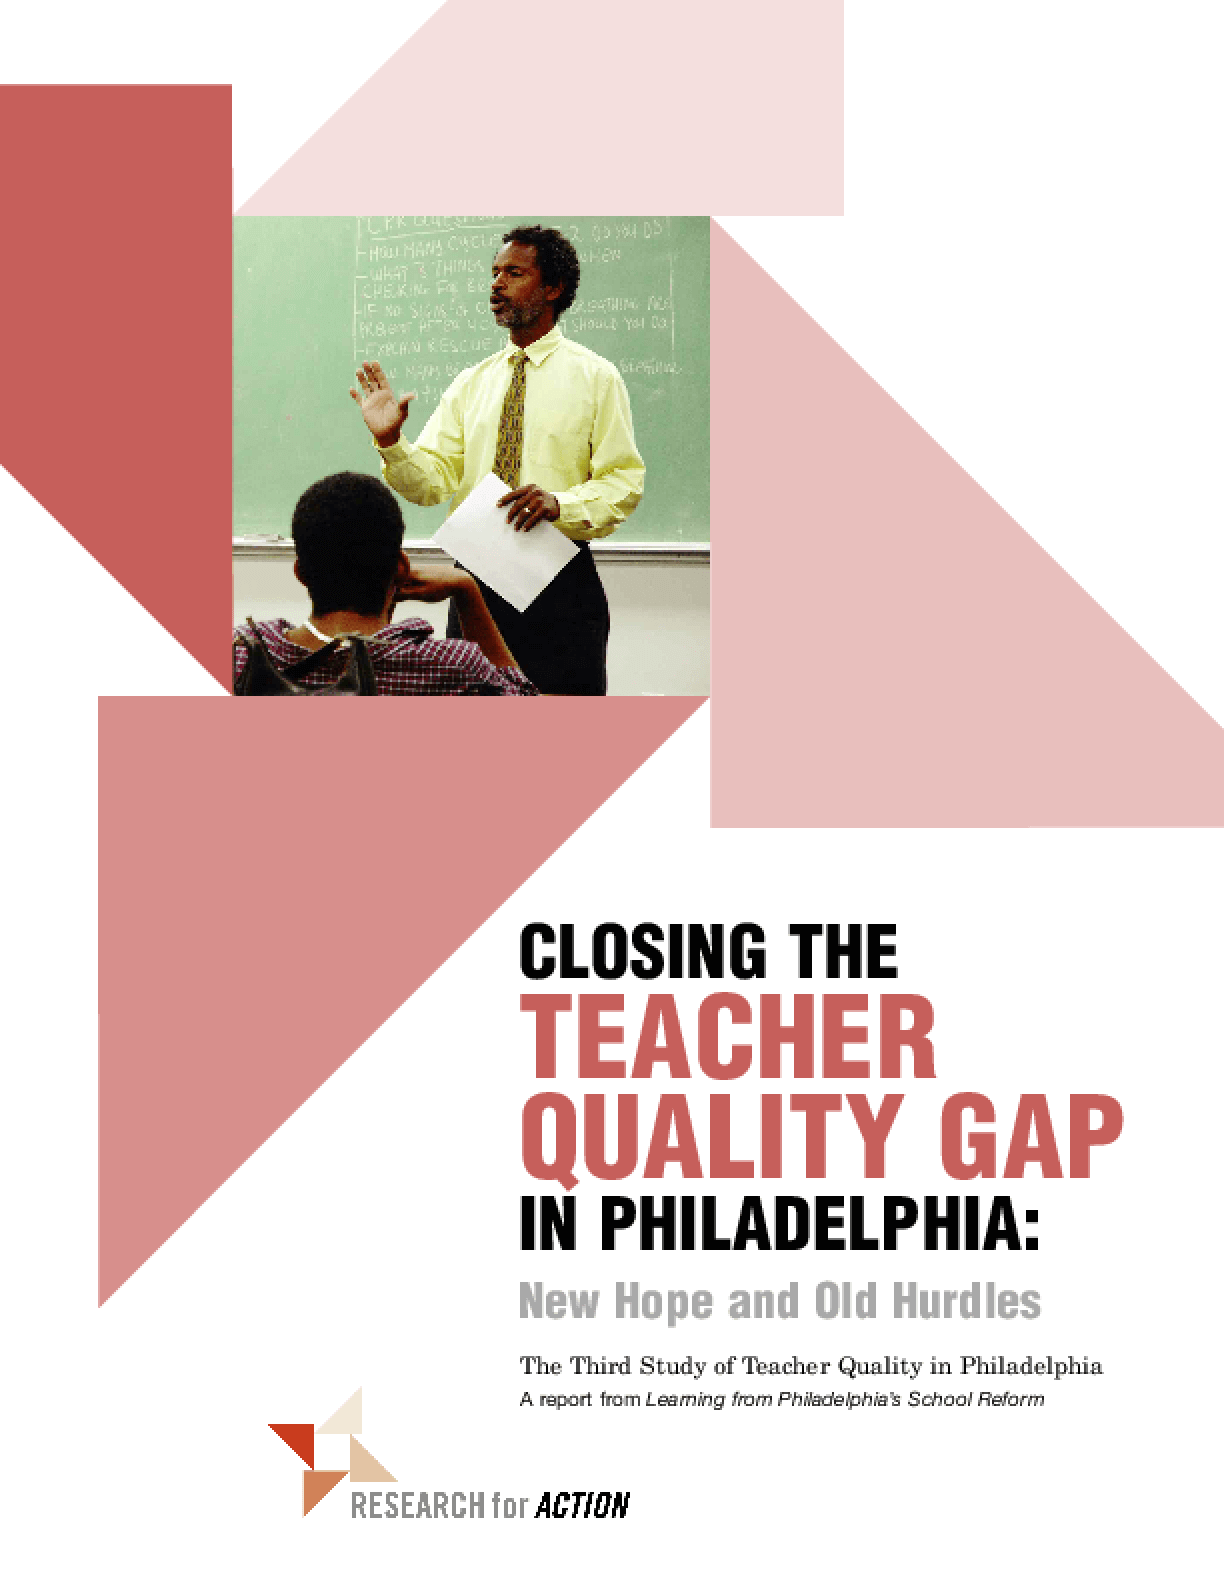 Closing the Teacher Quality Gap in Philadelphia: New Hope and Old Hurdles